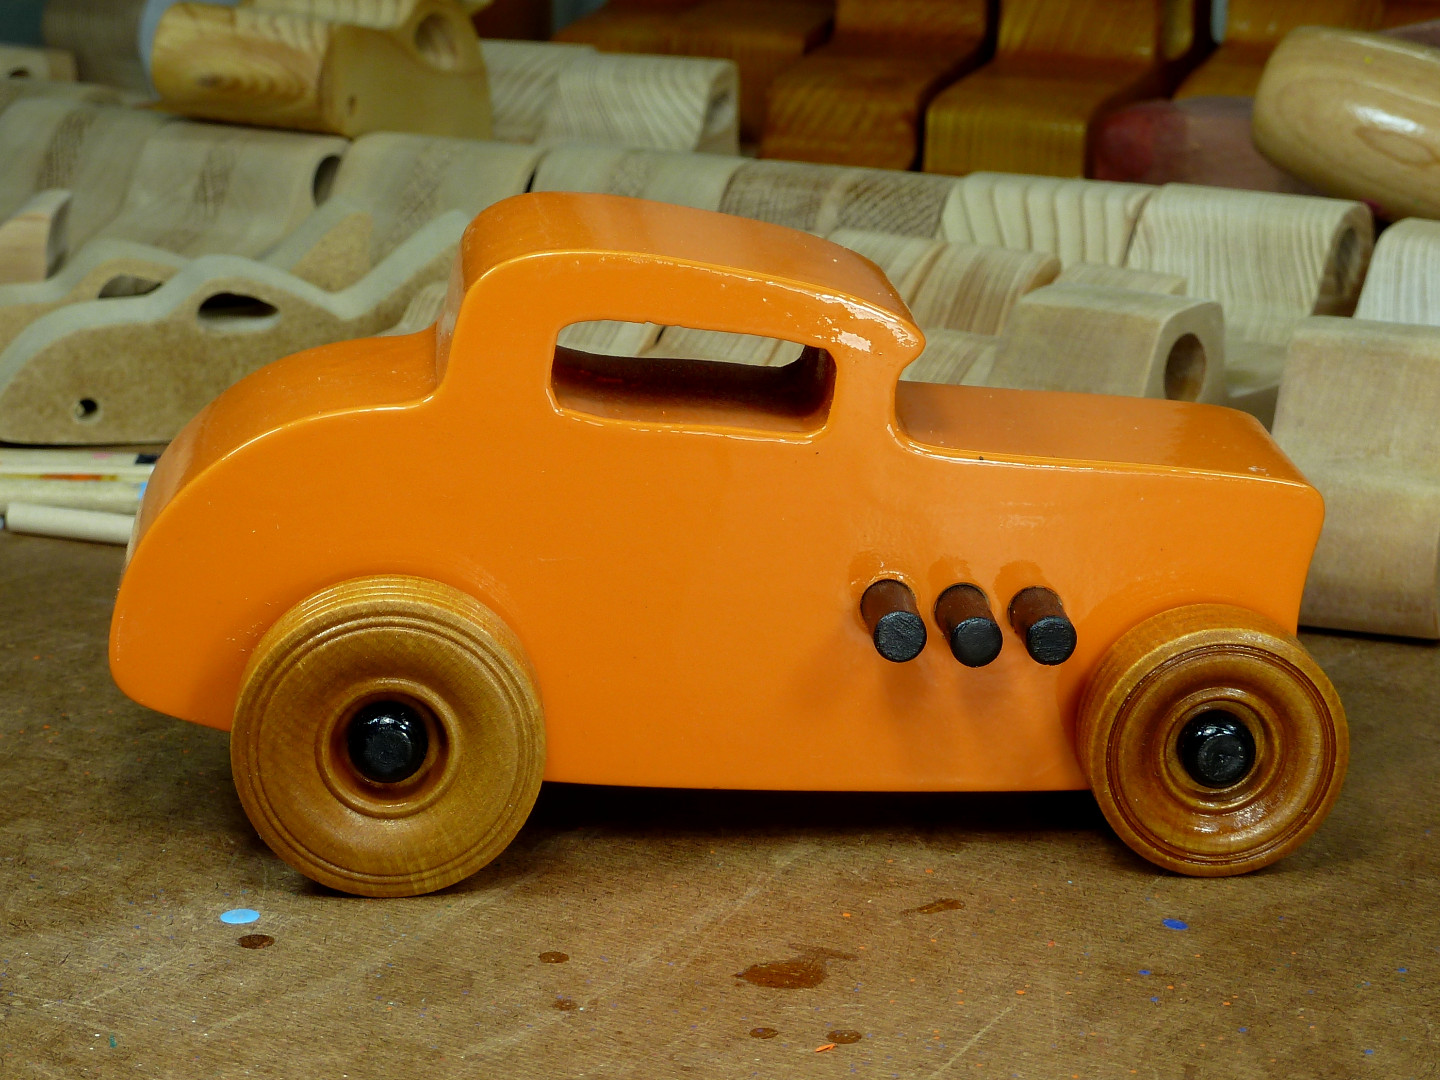 20170522-191930 Wooden Toy Car - Hot Rod Freaky Ford - 32 Deuce Coupe - MDF - Orange - Amber Shellac - Black.jpg